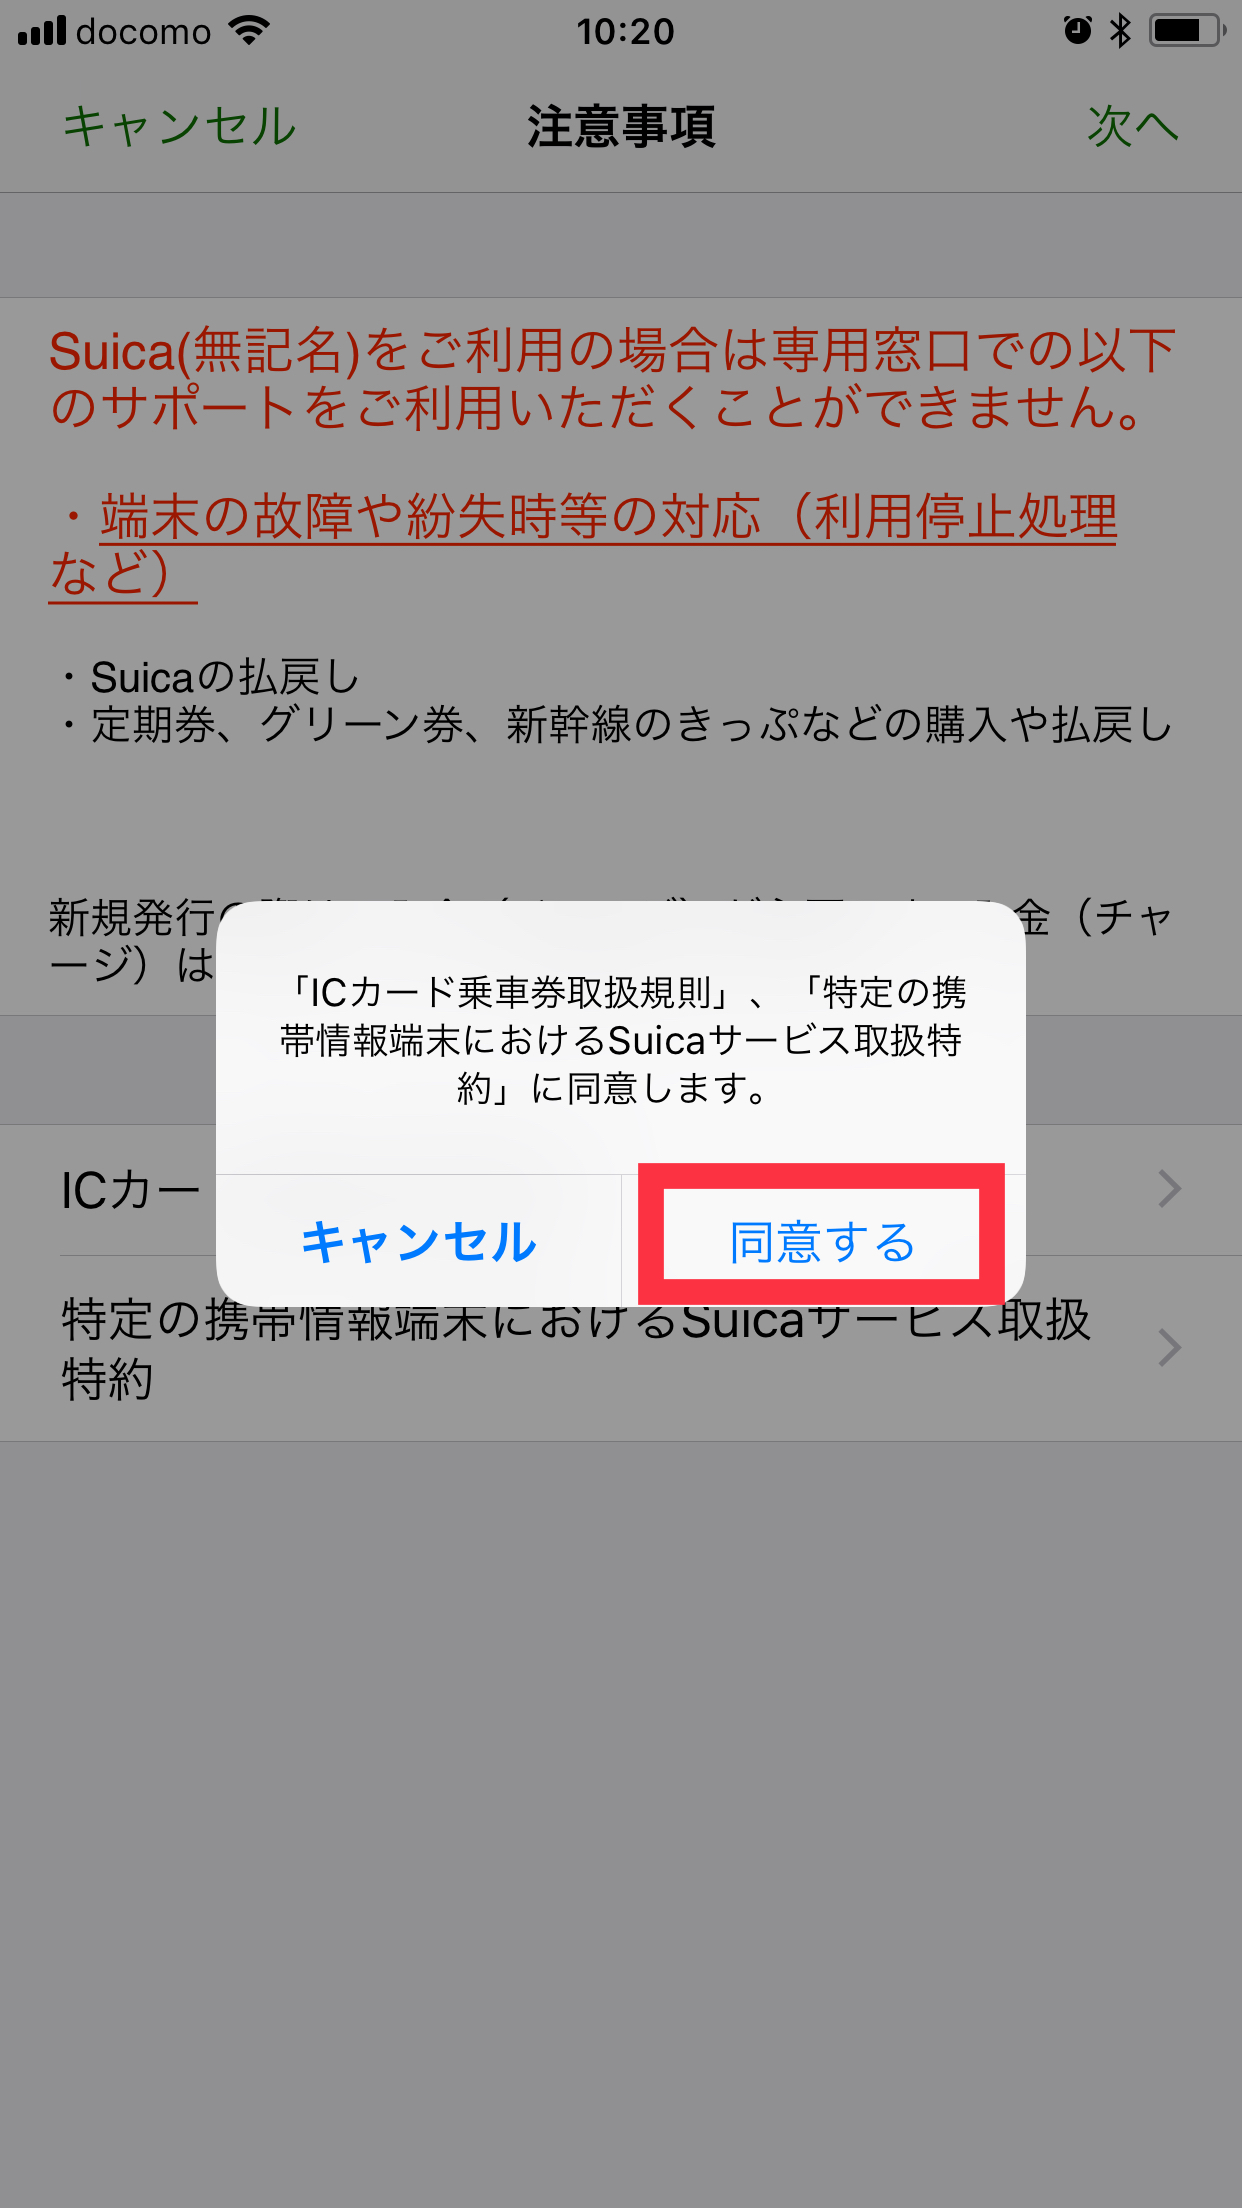 """Tap """"Agree"""" in red for terms and conditions."""